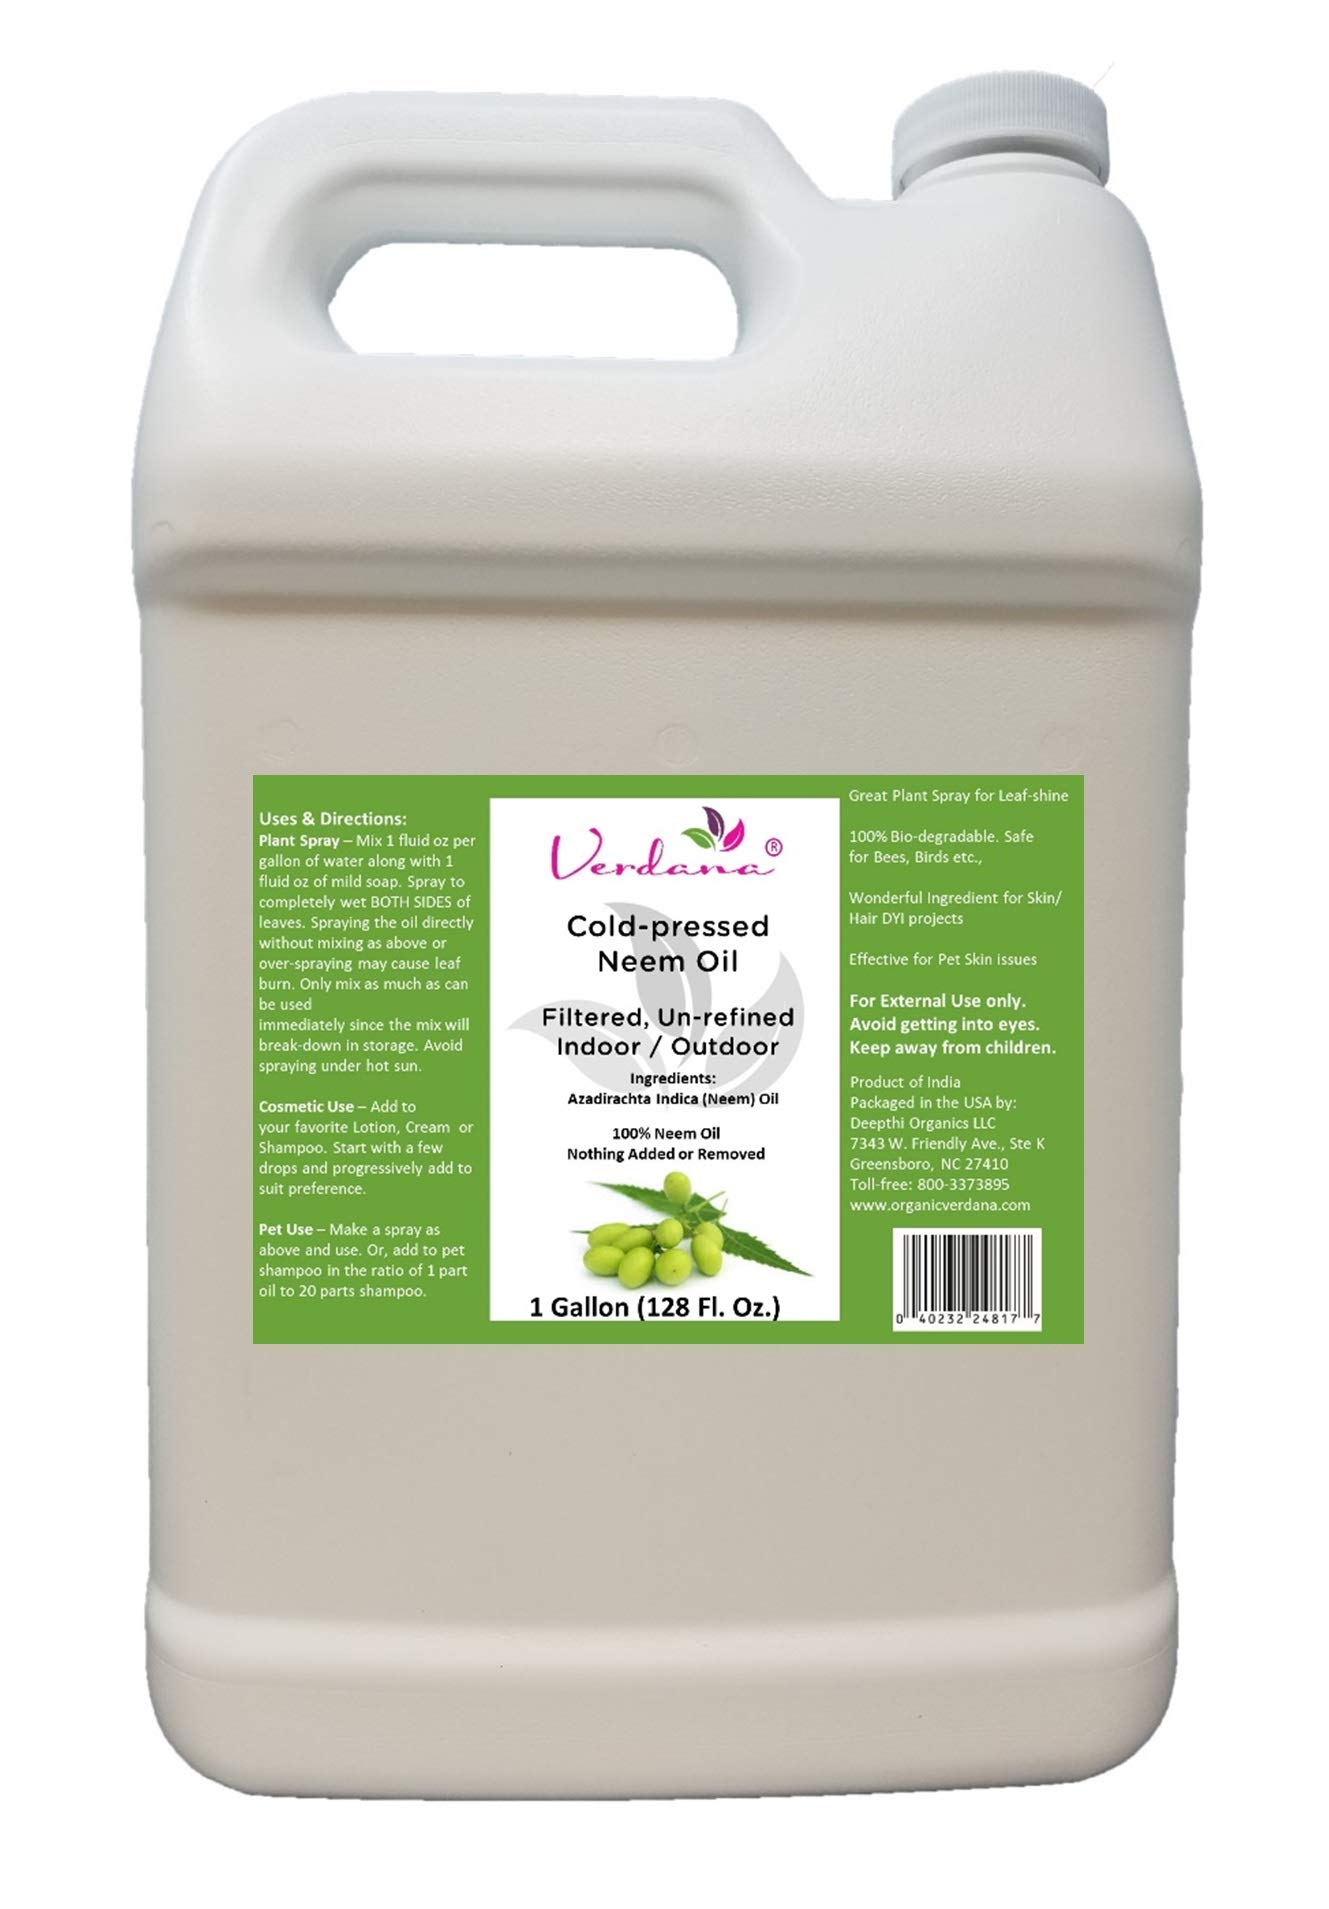 Verdana Cold Pressed Neem Oil - 1 Gallon - Unrefined, Filtered - High Azadirachtin Content -100% Neem Oil, Nothing Added or Removed - Indoor/Outdoor Laefshine, Pet Care, Skin Care, Hair Care by Verdana